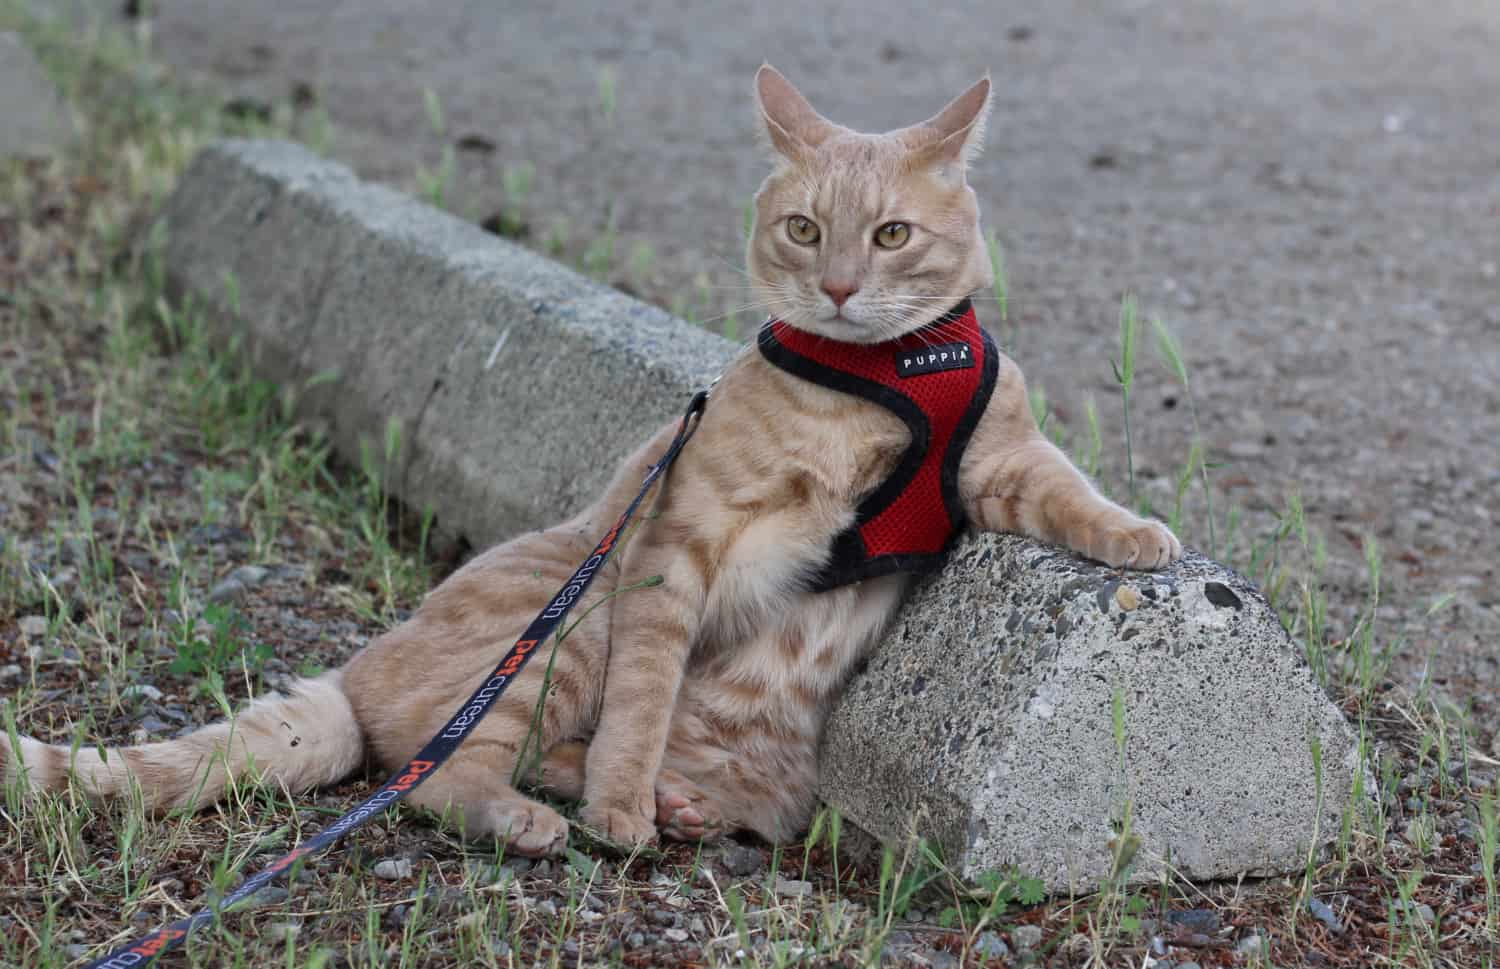 Orange stripe cat in a red harness lounging against a parking barrier